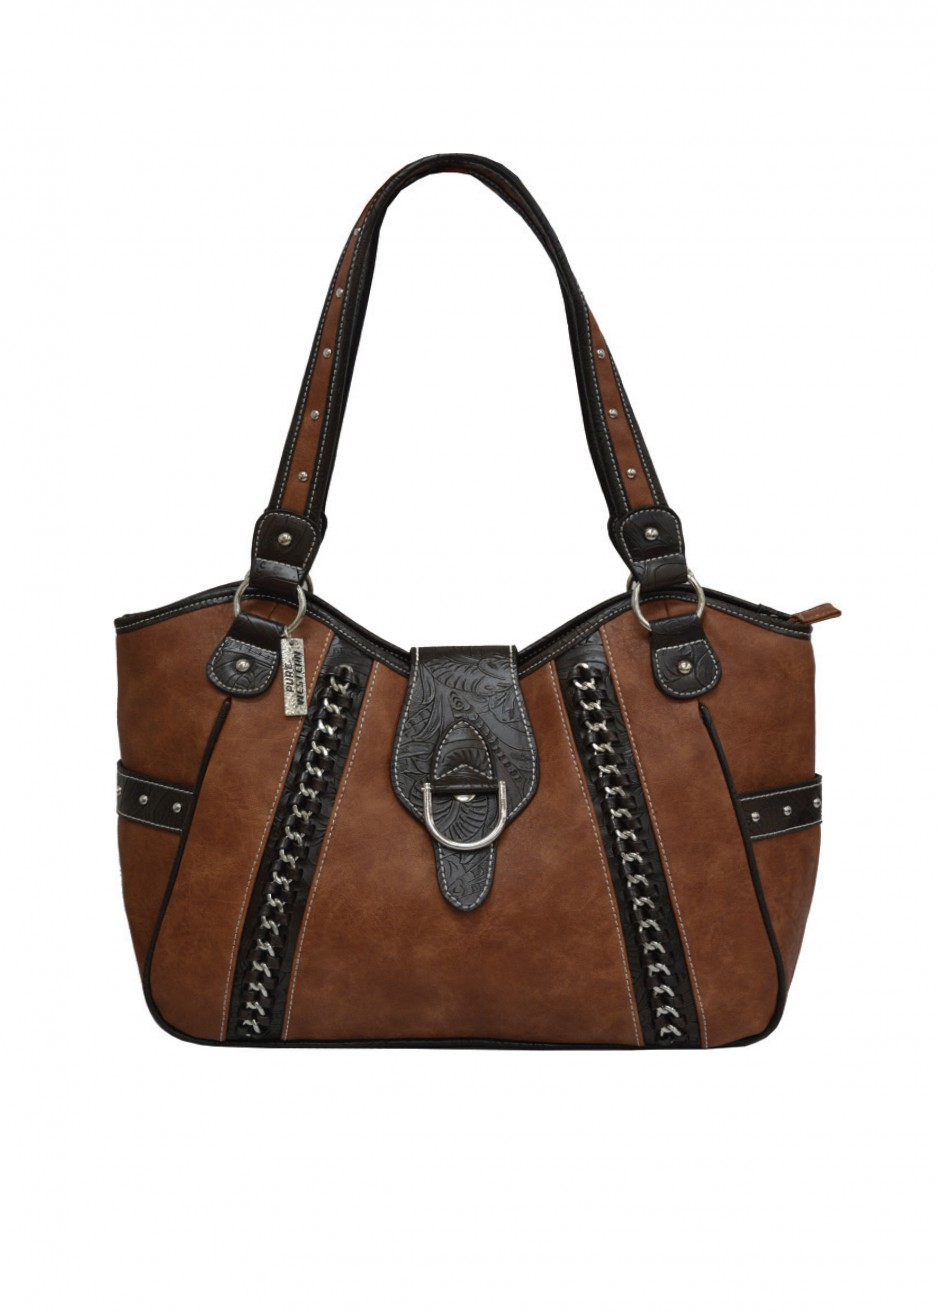 WOMENS NATALIE HANDBAG